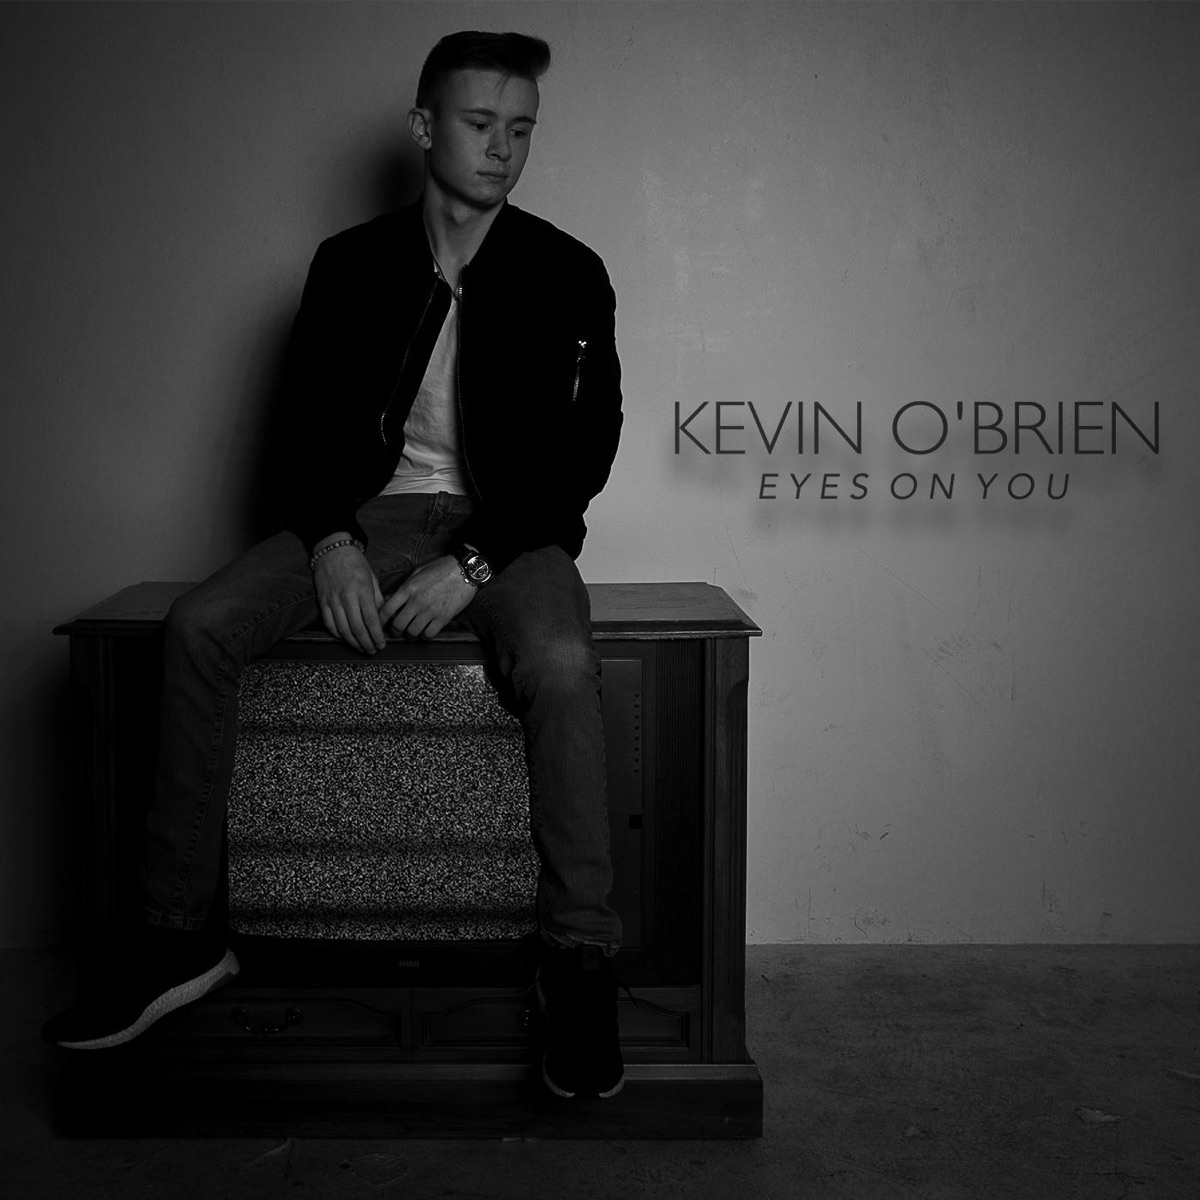 Eyes on You - EP Kevin OBrien CD cover